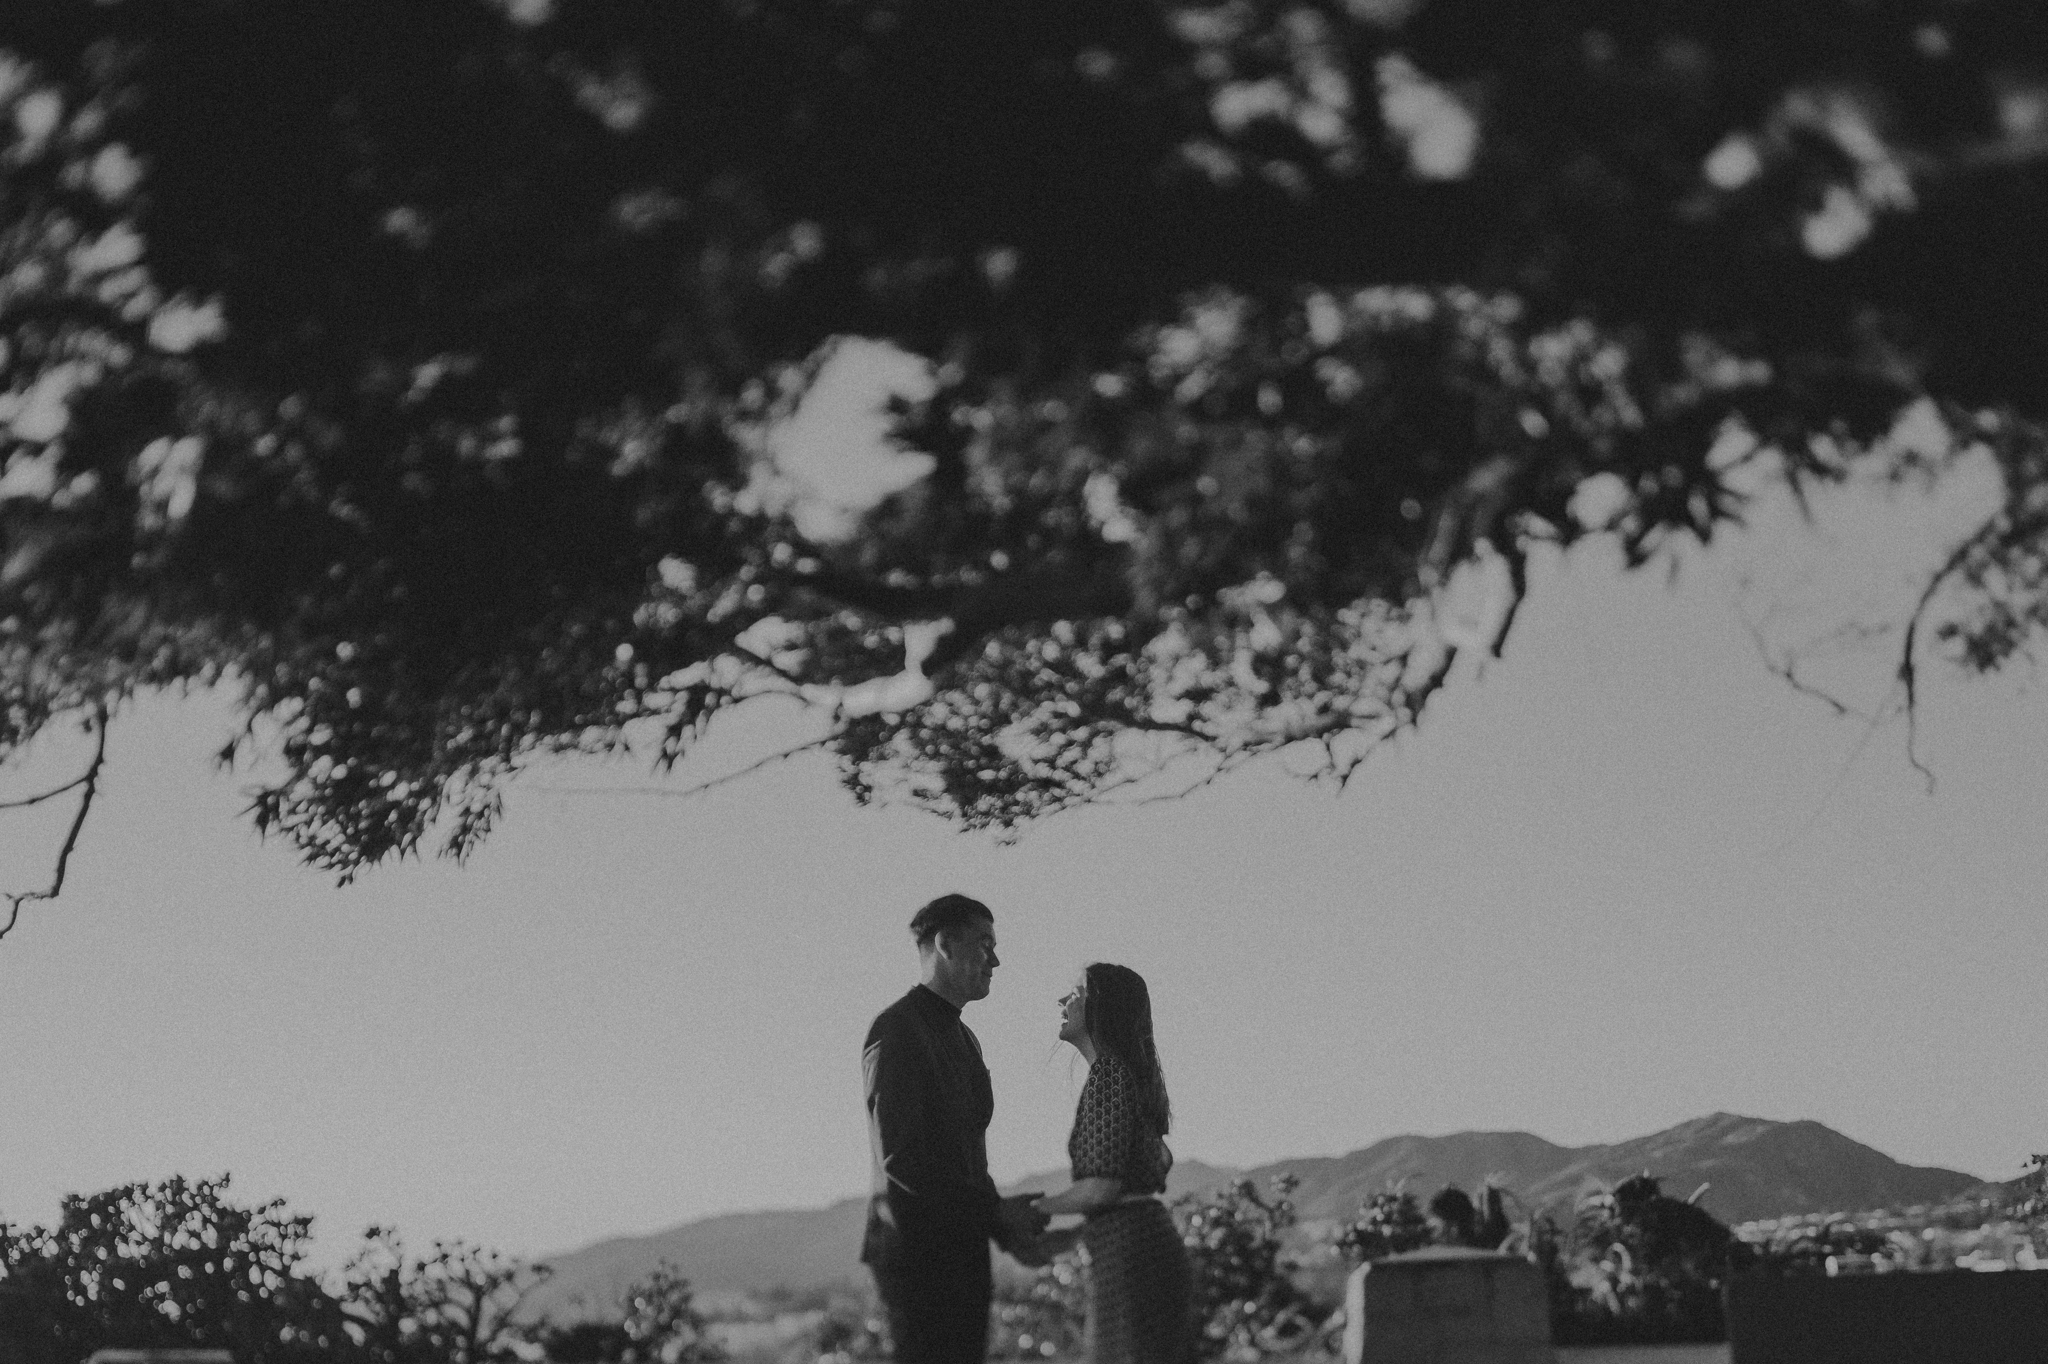 Santa Monica Engagement Photos - Wedding Photographer in Los Angeles - IsaiahAndTaylor.com -040.jpg